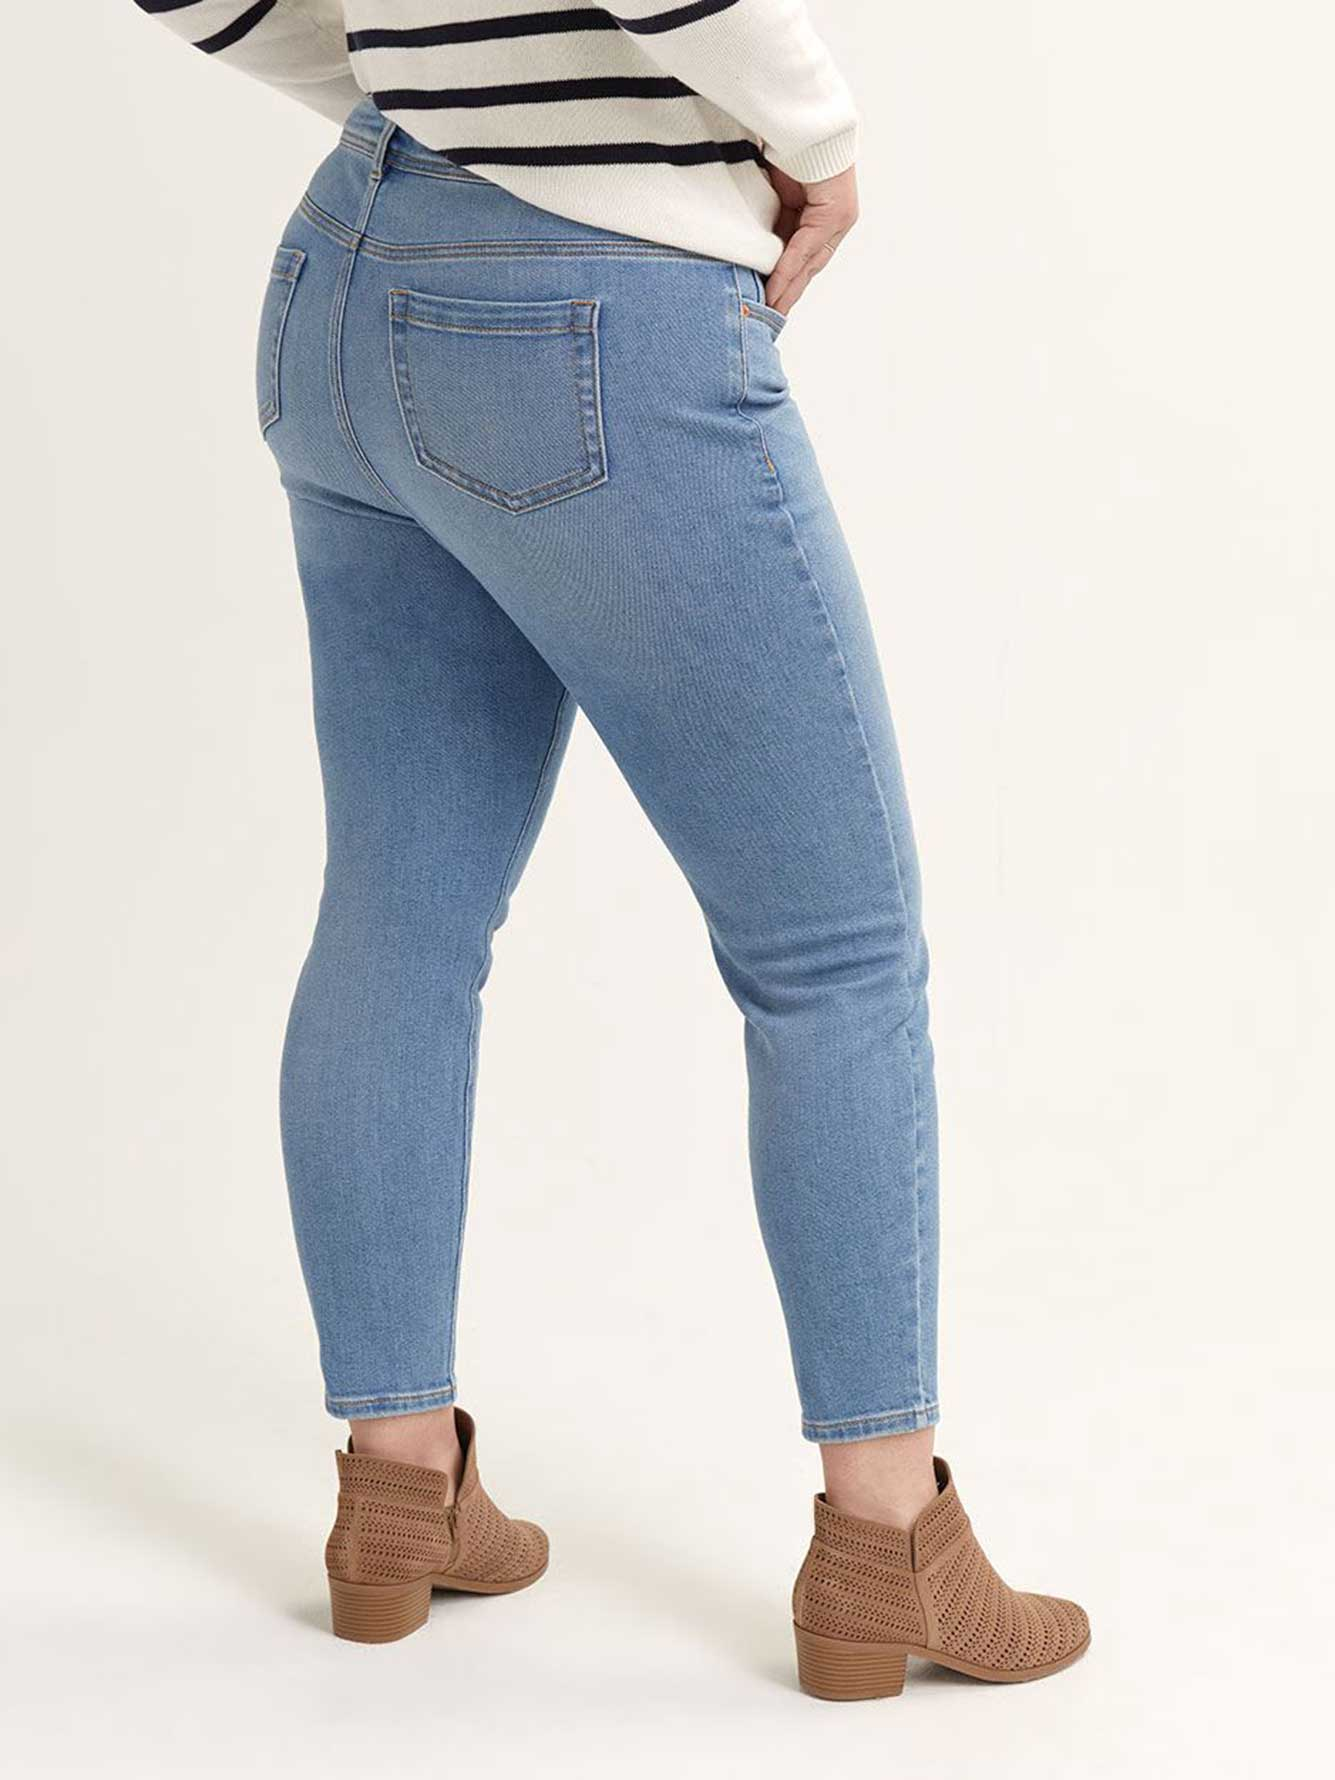 Authentic Ankle Skinny Jeans - L&L